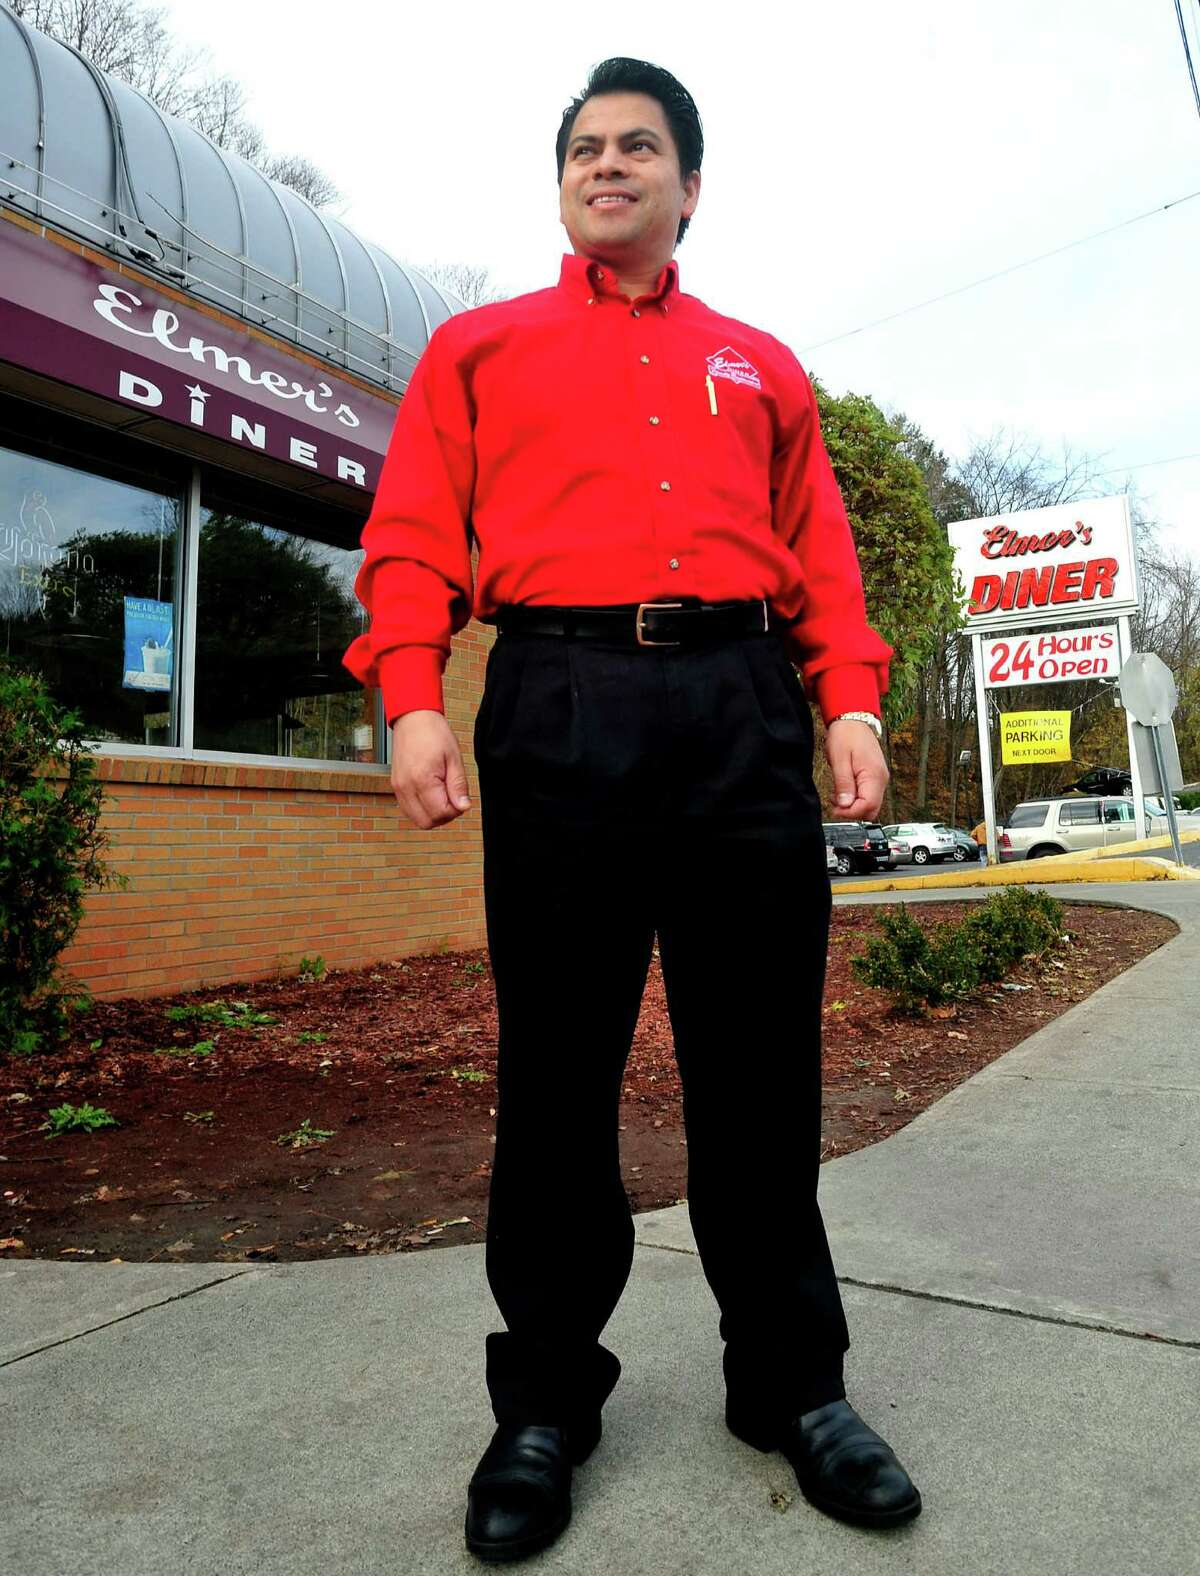 Elmer Palma stands outside his Danbury business, Elmer's Diner, Friday, Nov. 16, 2012. Palma serves as a member of the Danbury Zoning Commission.